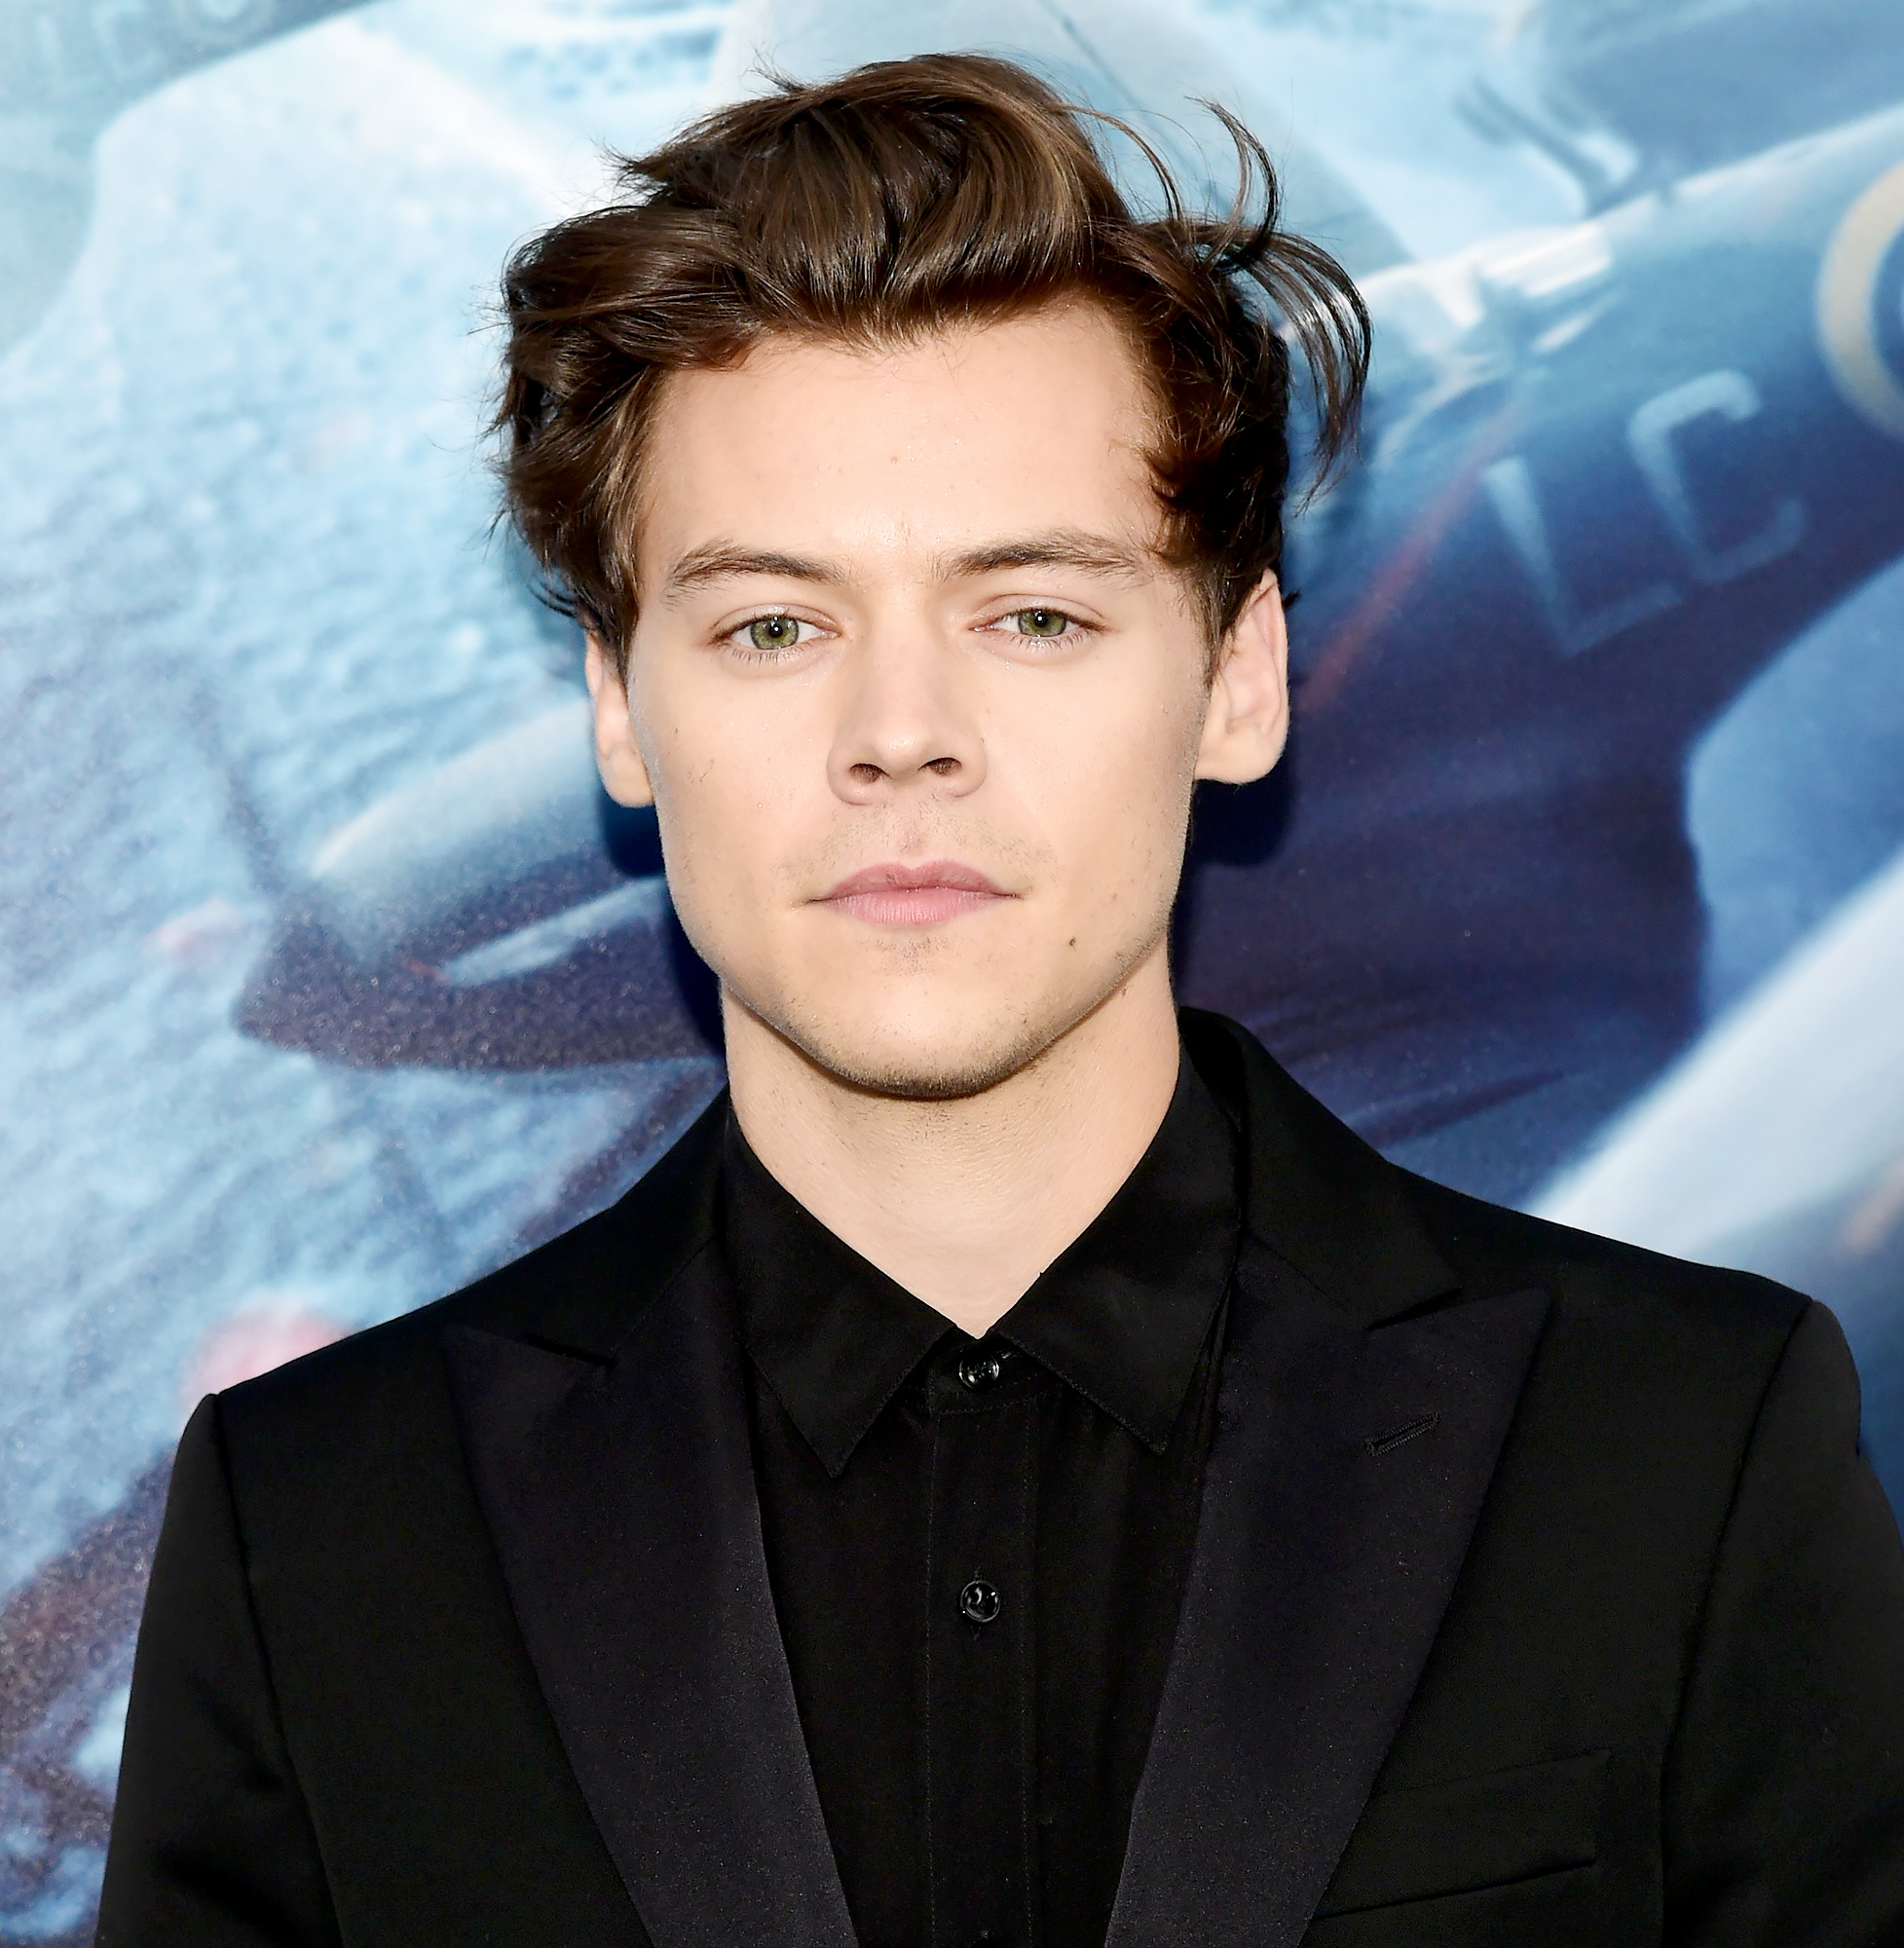 Harry Styles Reveals Reason He Passed on 'The Little Mermaid